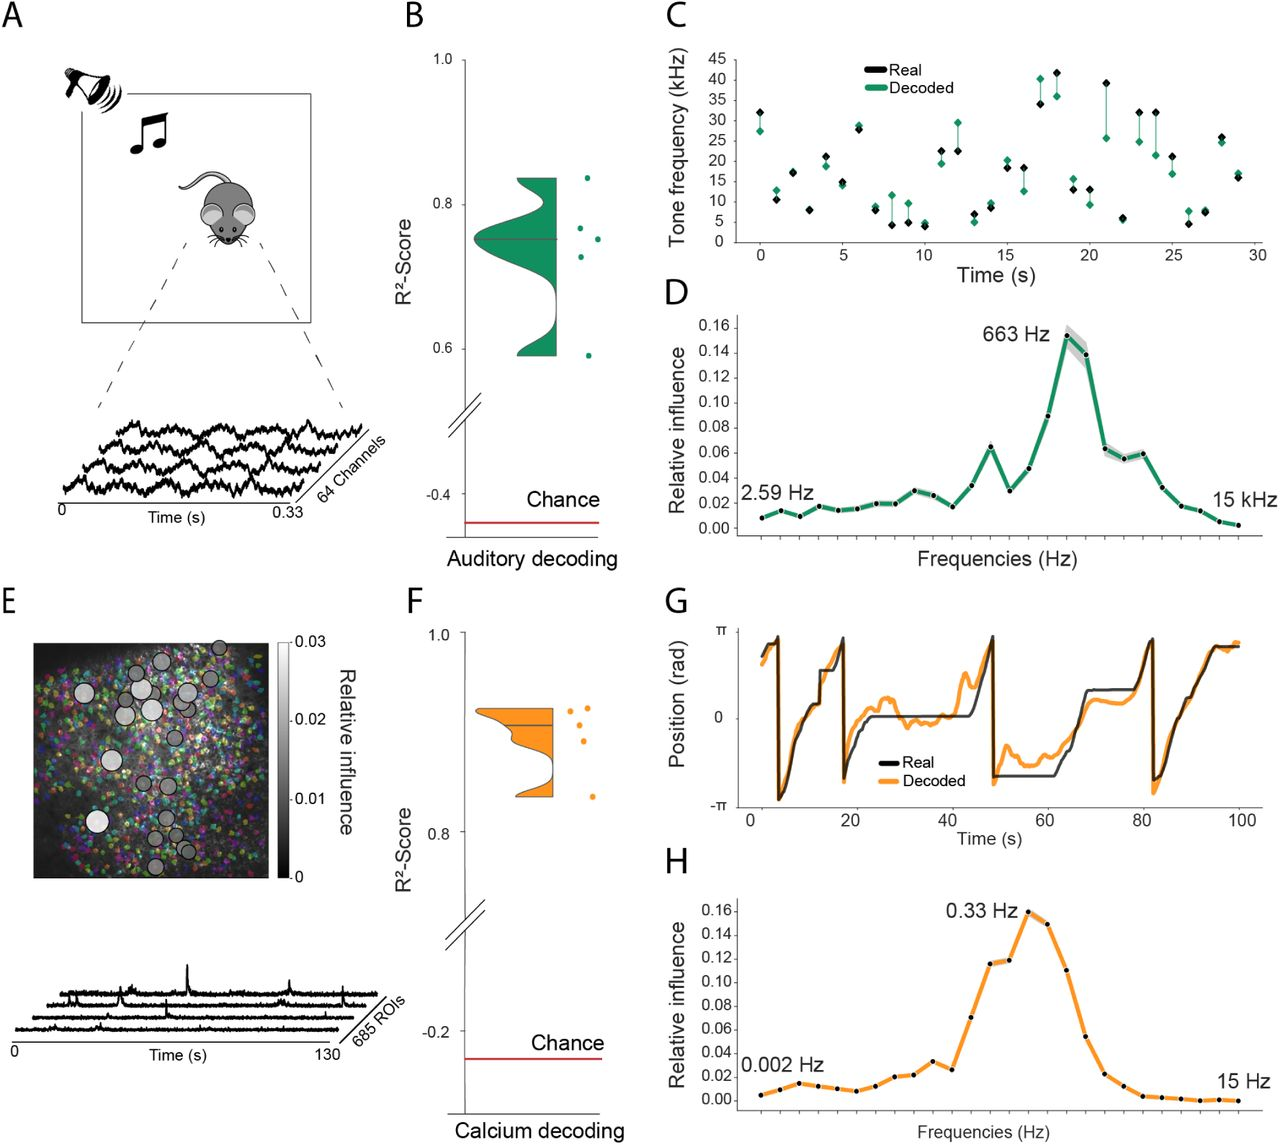 Model generalizes across recording techniques and brain regions (A) Overview of auditory recording. We recorded electrophysiological signals while the mouse is freely moving inside a small enclosure and is presented with pure tone stimuli ranging from 4kHz to 64kHz. (B) R 2 -score for decoding of frequency tone from auditory cortex (0.73 ± 0.08), chance level is indicated by the red line. (C) An example section for decoding of auditory tone frequencies from auditory electrophysiological recordings, real tone colored in black, decoded tone in green, the line between real and decoded indicates magnitude of error. (D) Influence plots for decoding of auditory tone stimuli, same method as used for CA1 recordings. (E) Calcium recordings from rat running on a linear track in VR. We record from 685 cells and use Suite2p to preprocess the raw images and extract calcium traces which we feed through the model to decode linear position. (F) R 2 -score for decoding of linear position from two-photon CA1 recordings (0.90 ± 0.03), chance level is indicated by the red line. (G) Example trajectory through the virtual linear track (linearized to [− π, π ] with real position (black) and decoded position (orange)). (H) Influence plots for decoding of position from two-photon calcium imaging. Note that the range of frequencies is between 0Hz and 15Hz as the sampling rate of the calcium traces is 30Hz.